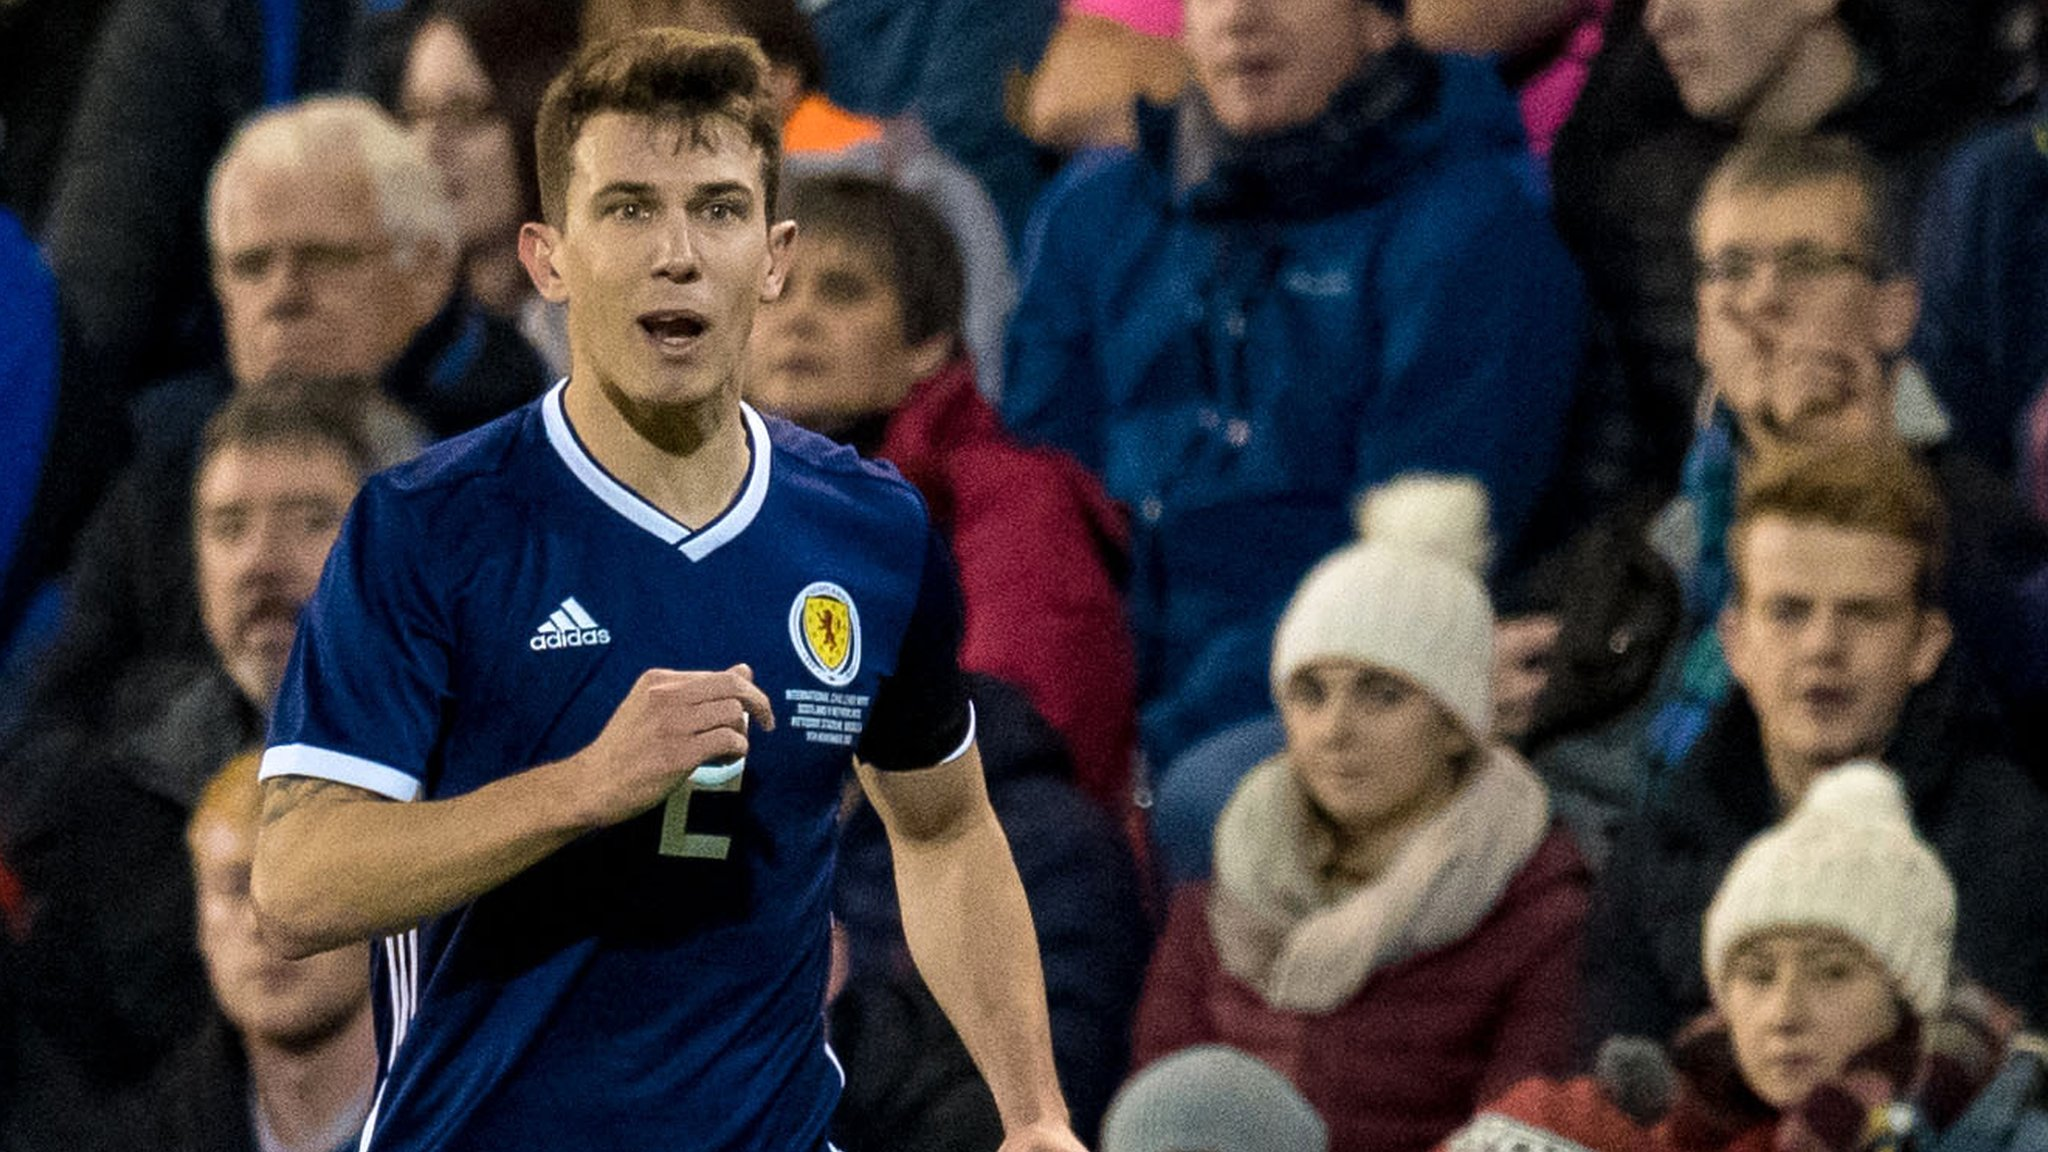 Scotland: Ryan Jack out for Nations League double-header with Albania & Israel.